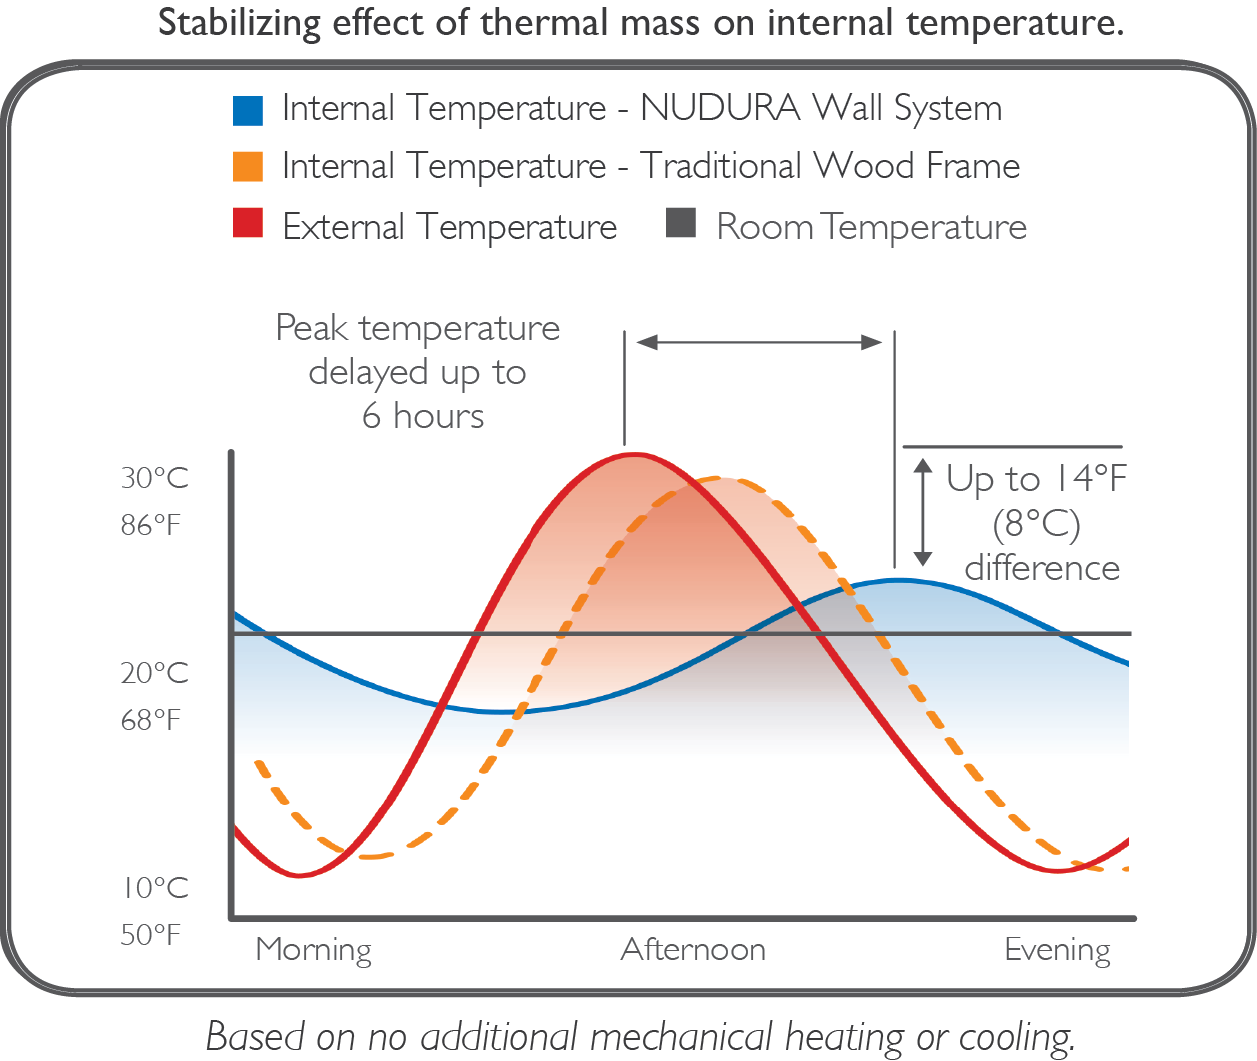 NUDURA walls have shown to maintain a stable interior temp during exterior heating/cooling